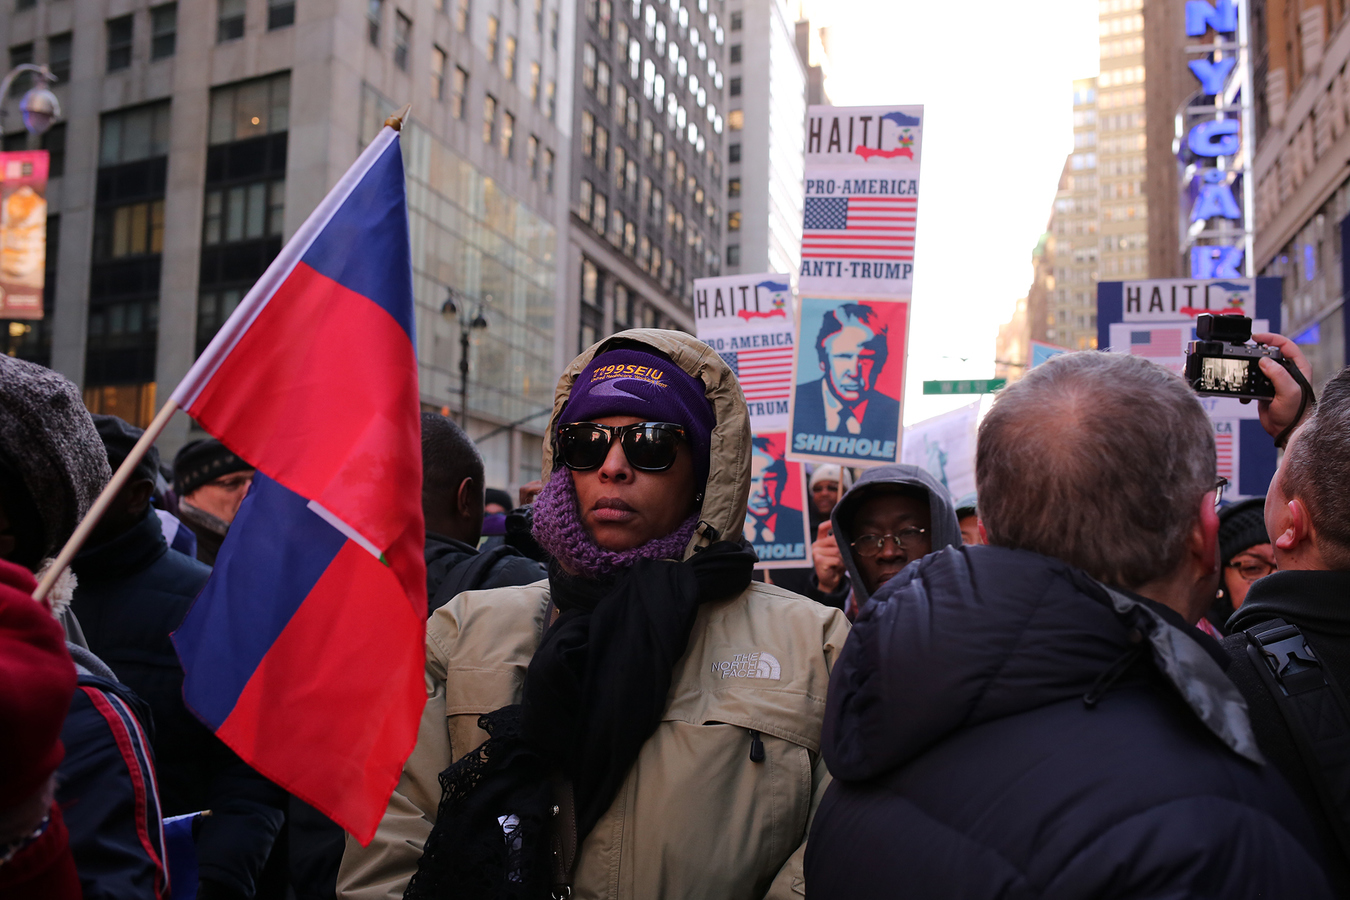 Current Project Martin Luther King Day 1199 SEIU United Healthcare Workers East Rally Against Racism: Stand Up for Haiti and Africa Times Square 1/15/18